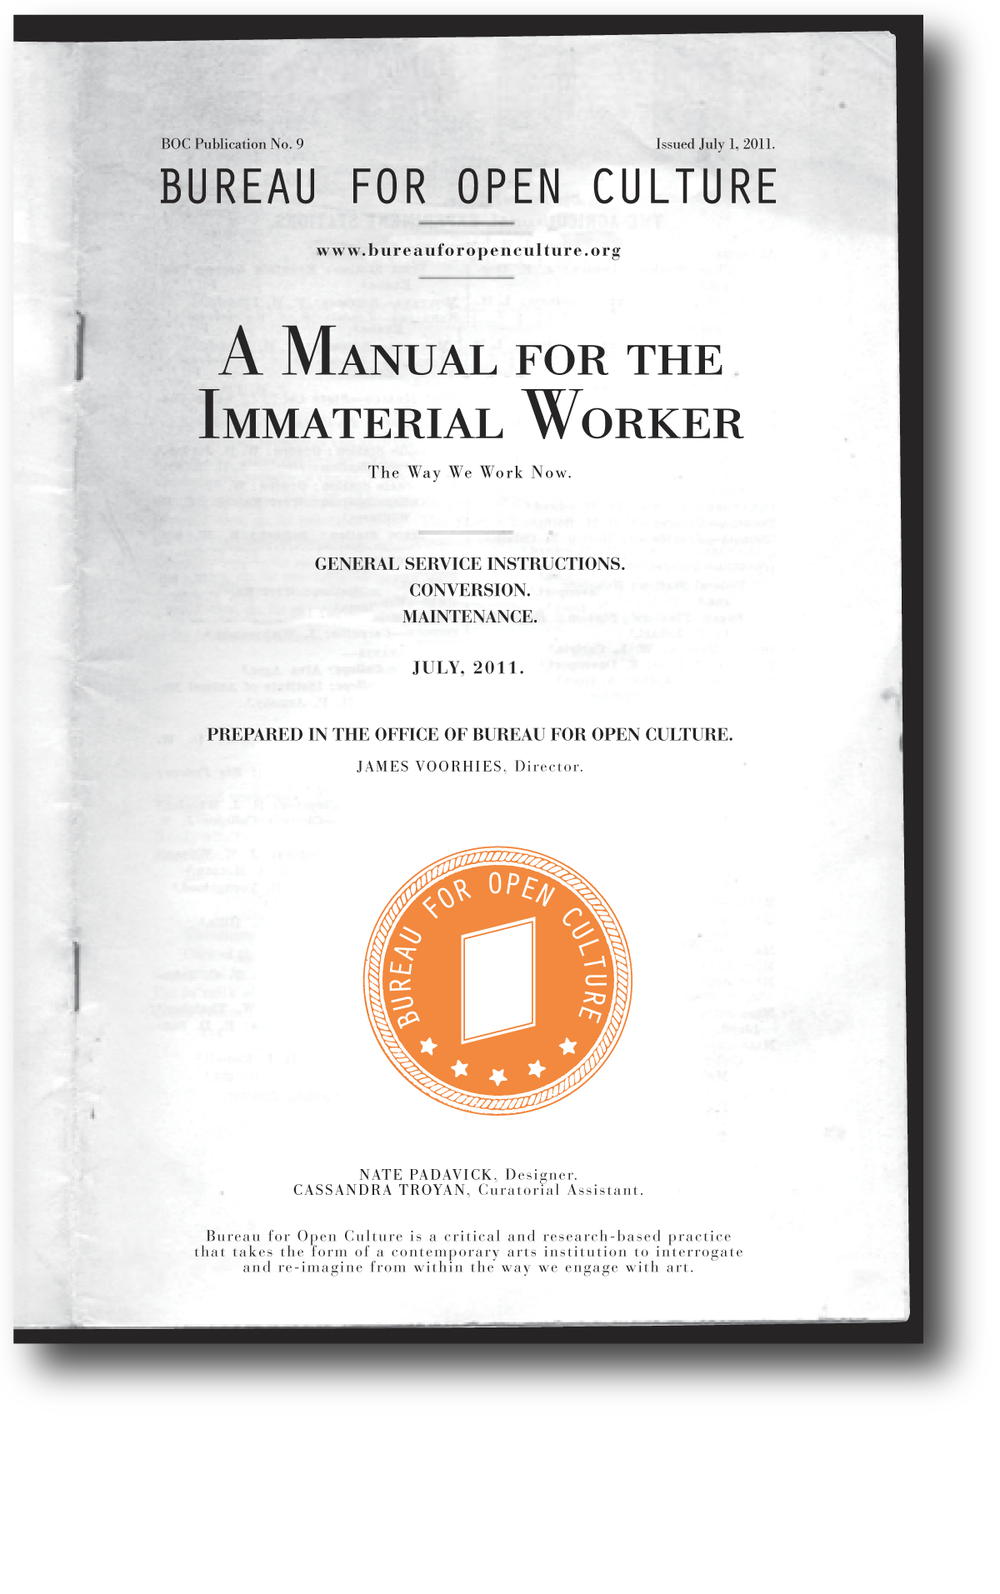 A Manual for the Immaterial Worker , published by Printed Matter, 2011; designed by Nate Padavick; 12 pages; 8.5 x 5.75 inches